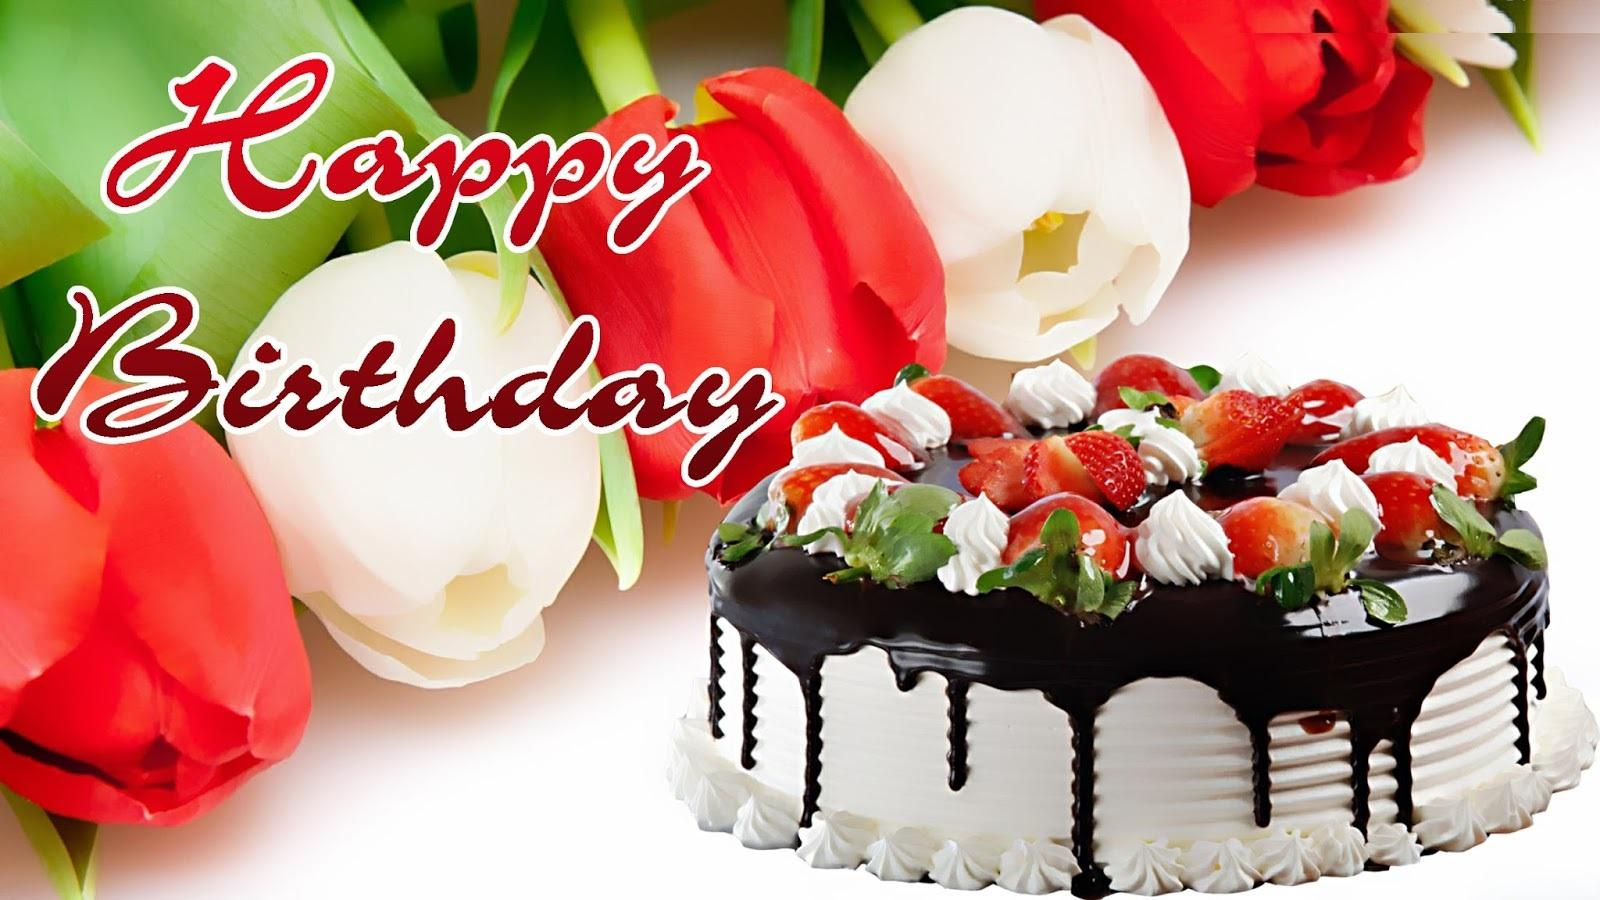 beautiful birthday images download ; happy-birthday-images-26